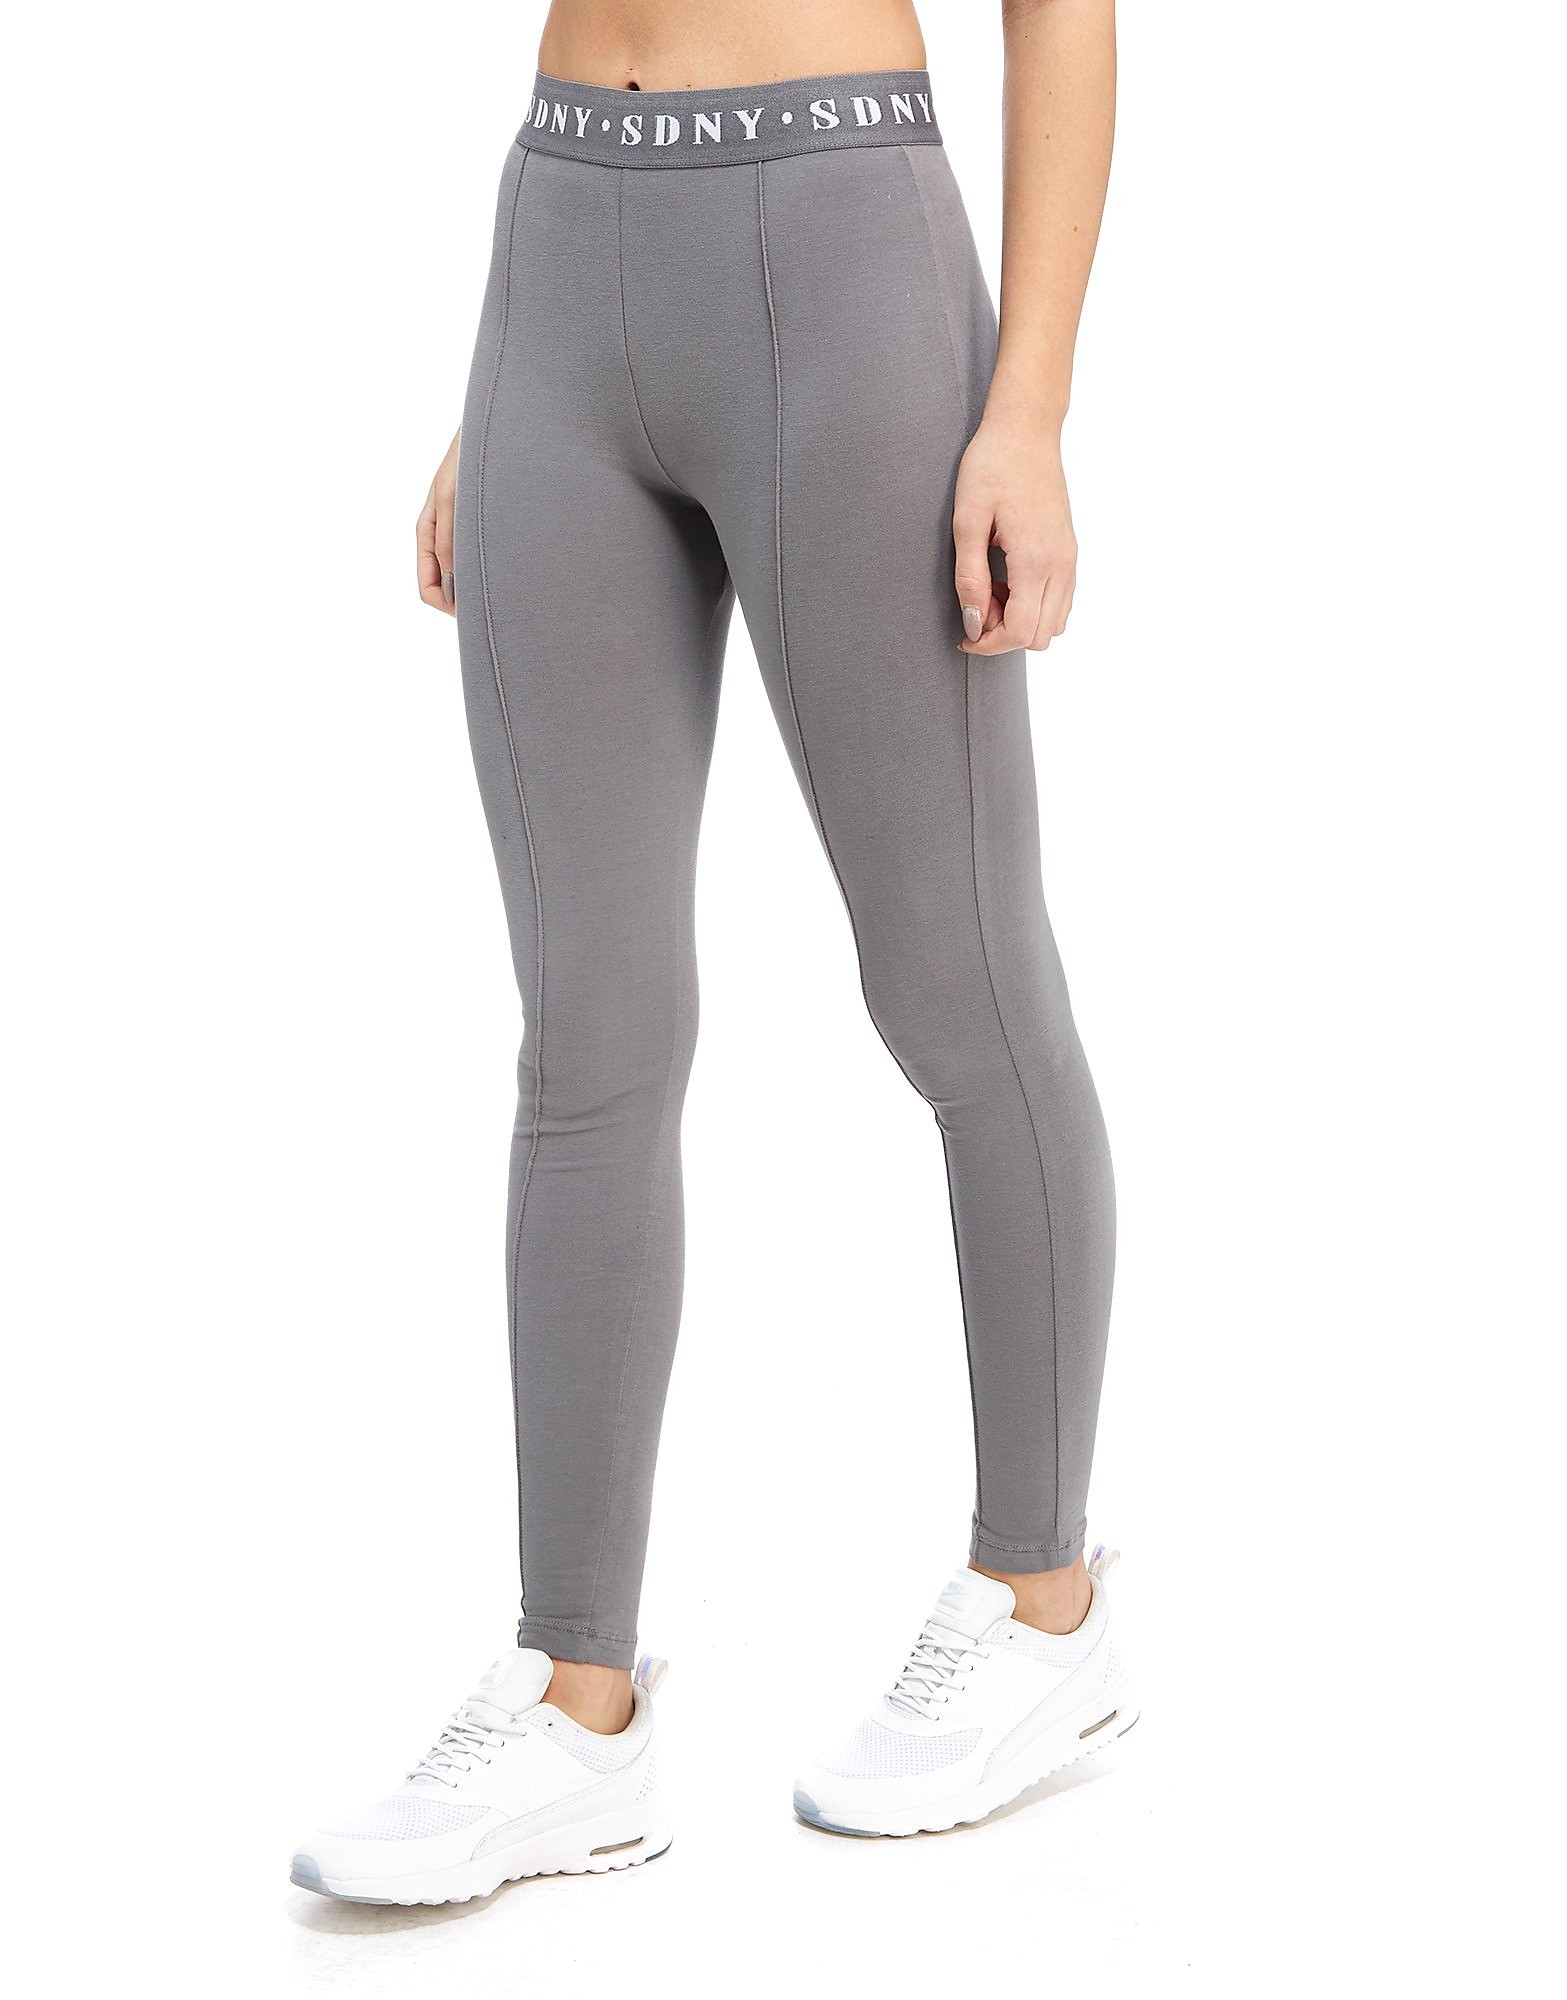 Supply & Demand Suede Leggings